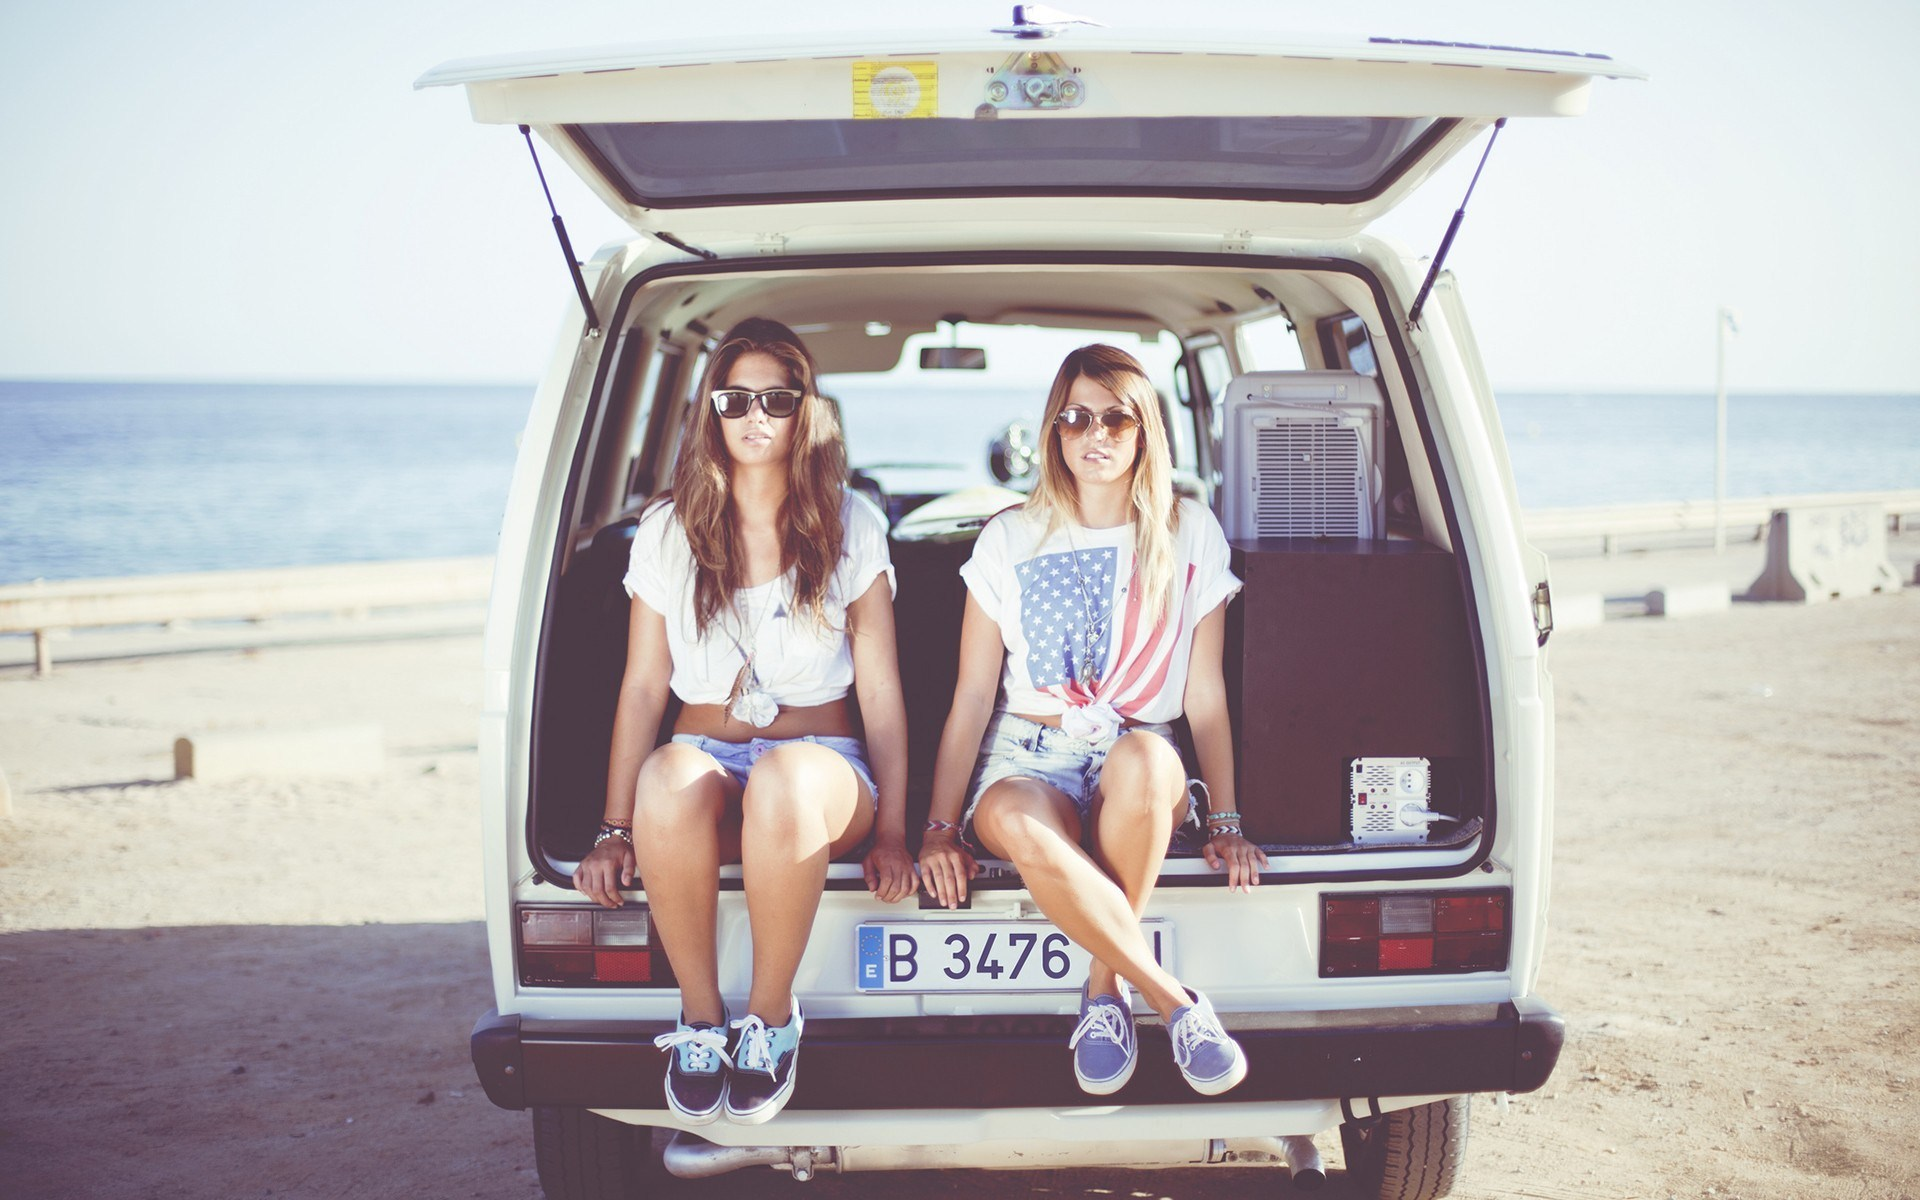 Models Girls Car Beach Mood